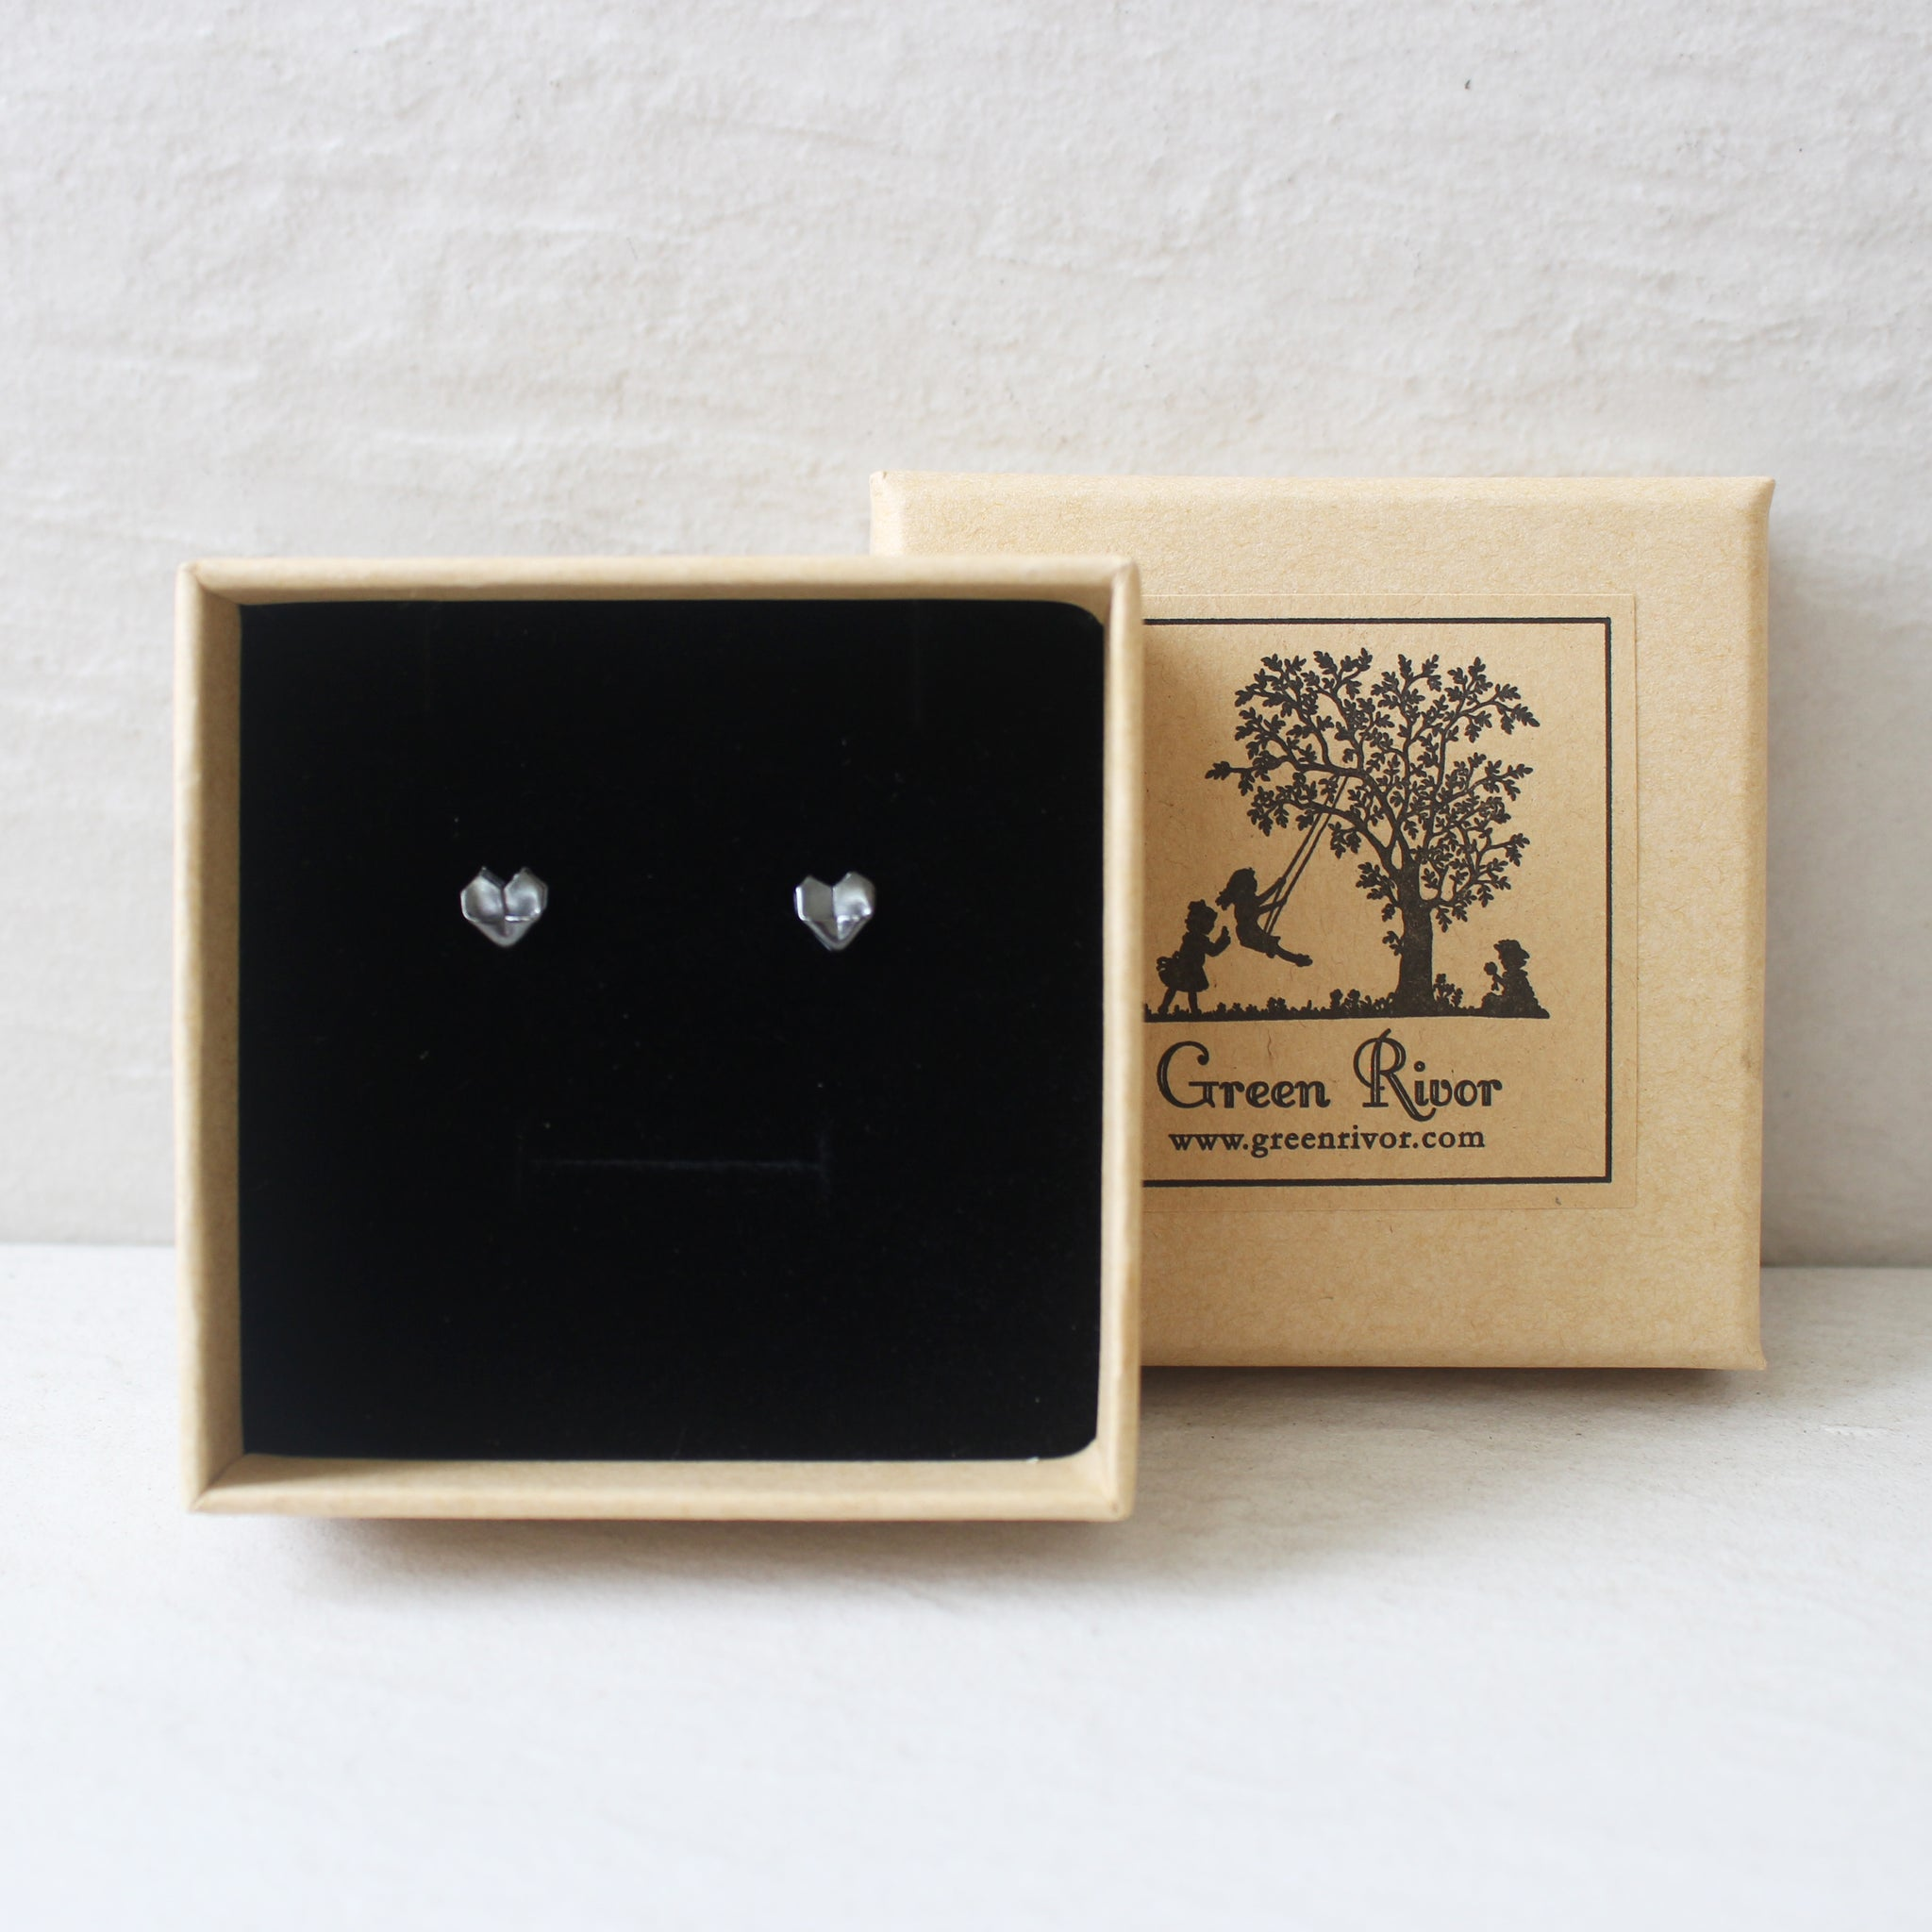 Black Silver Origami Heart Stud Earrings (Mini) / Oxidised Silver Origami Heart Earrings (Small)